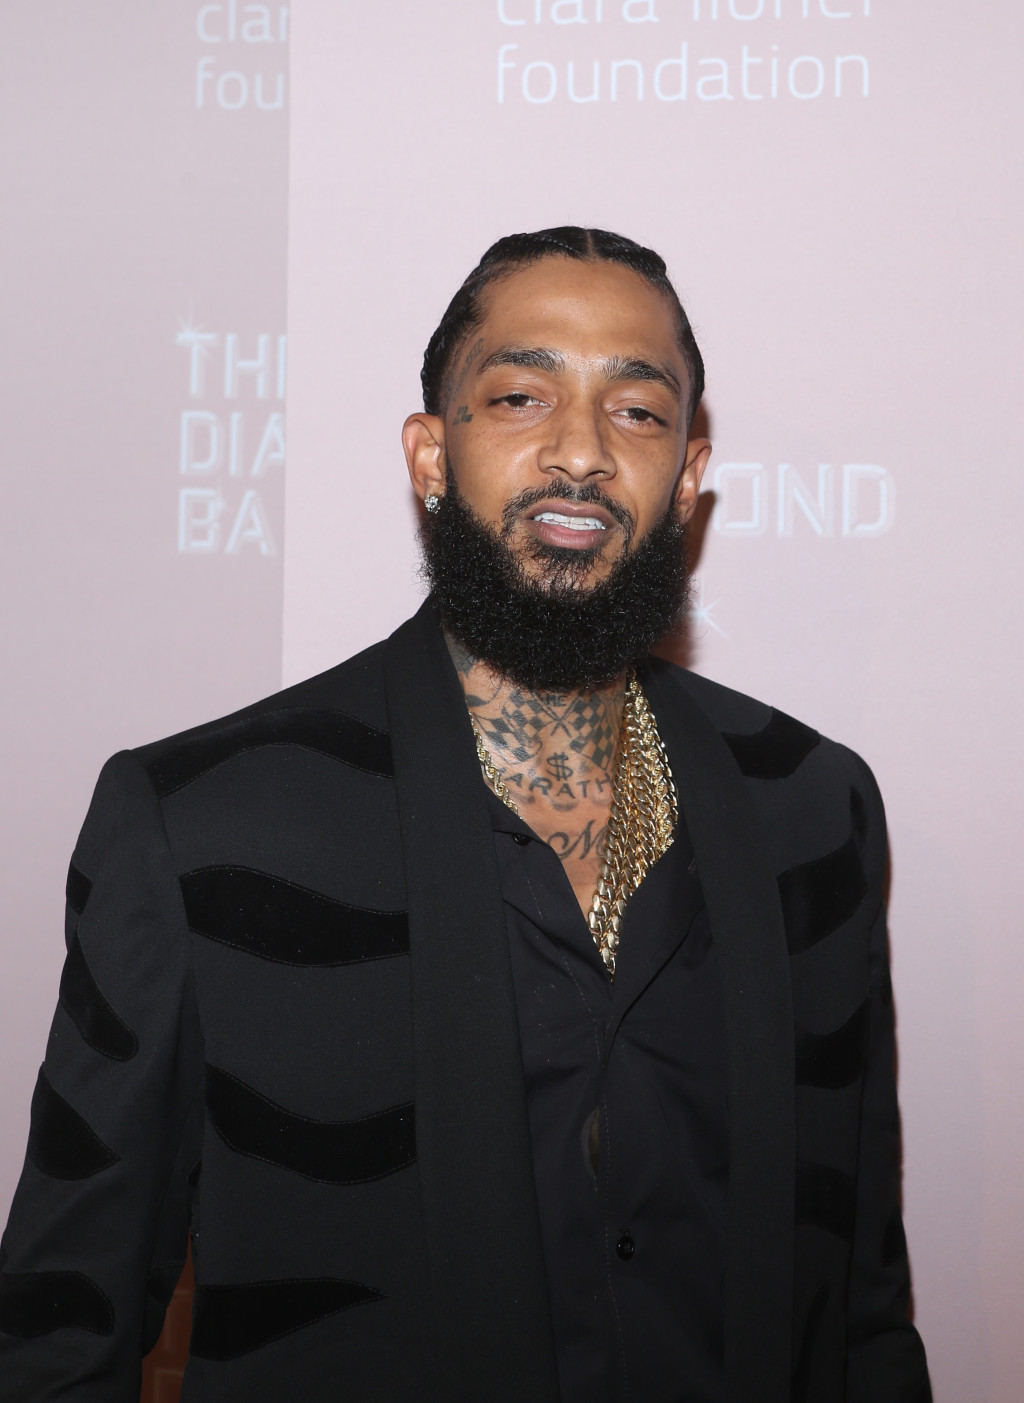 Tanisha Foster, Mom Of Nipsey Hussle's Daughter, Wishes Him A Happy Birthday With The Help Of An Interesting Photo